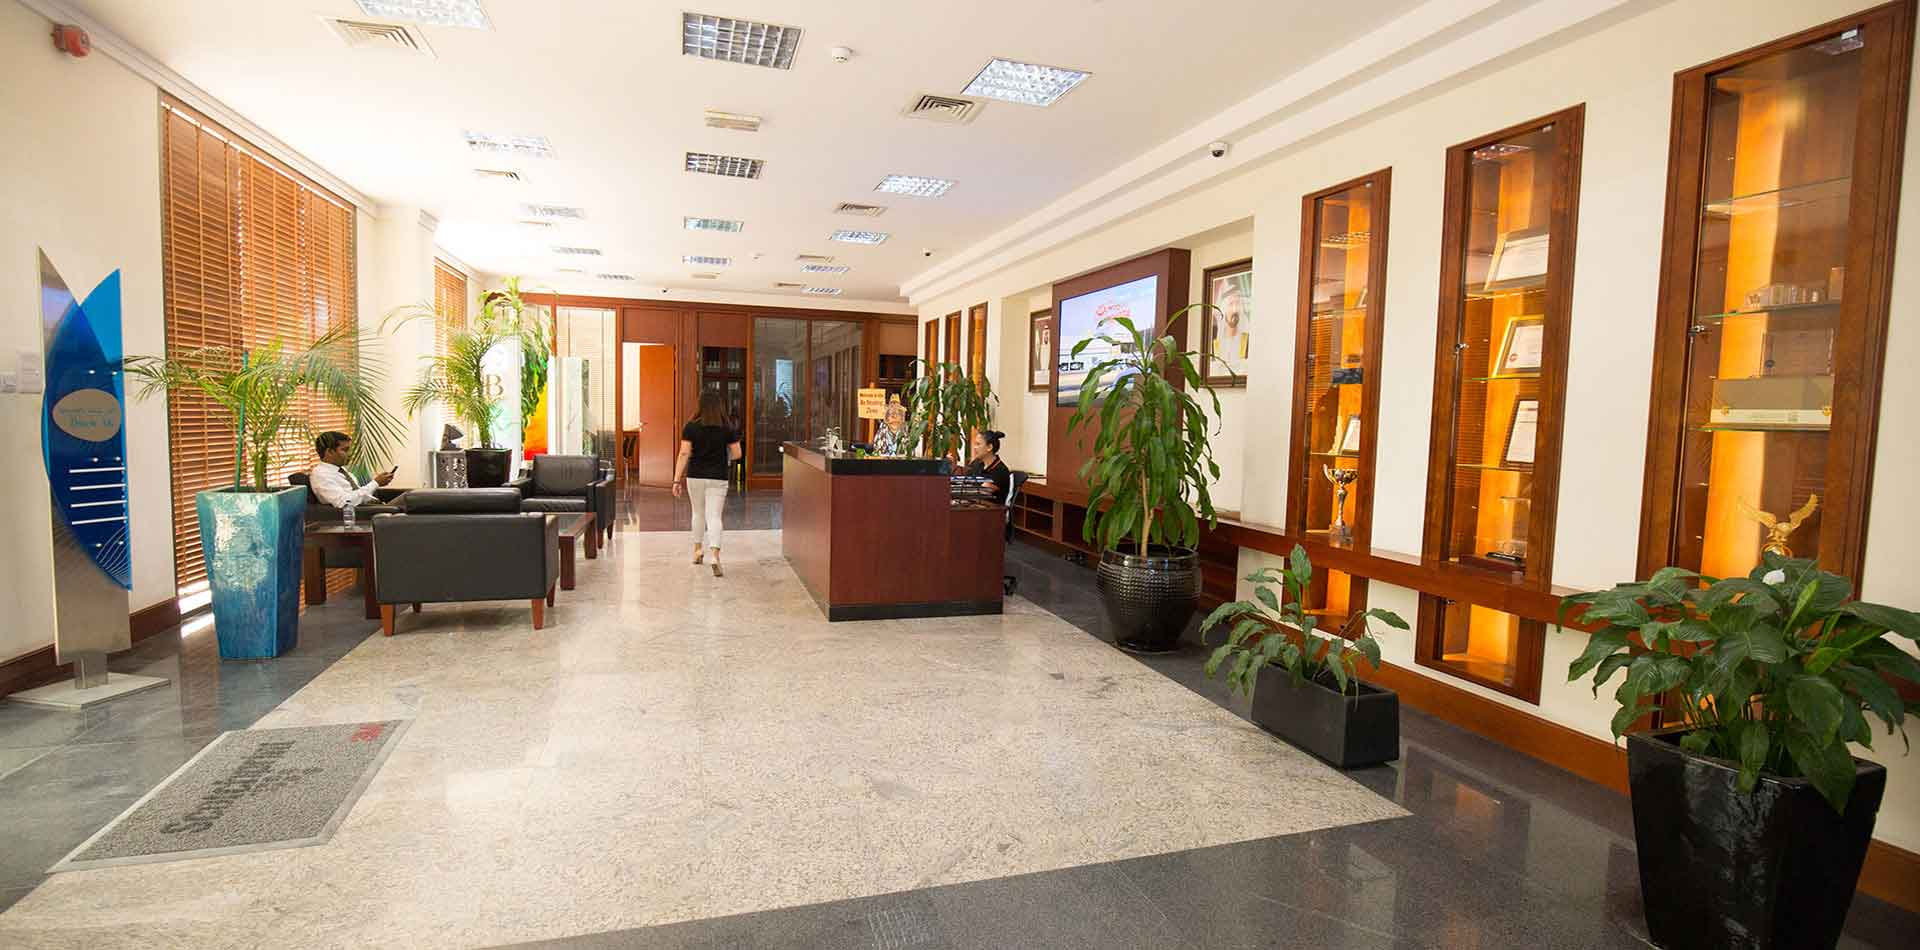 Lobby Area of Joseph Group